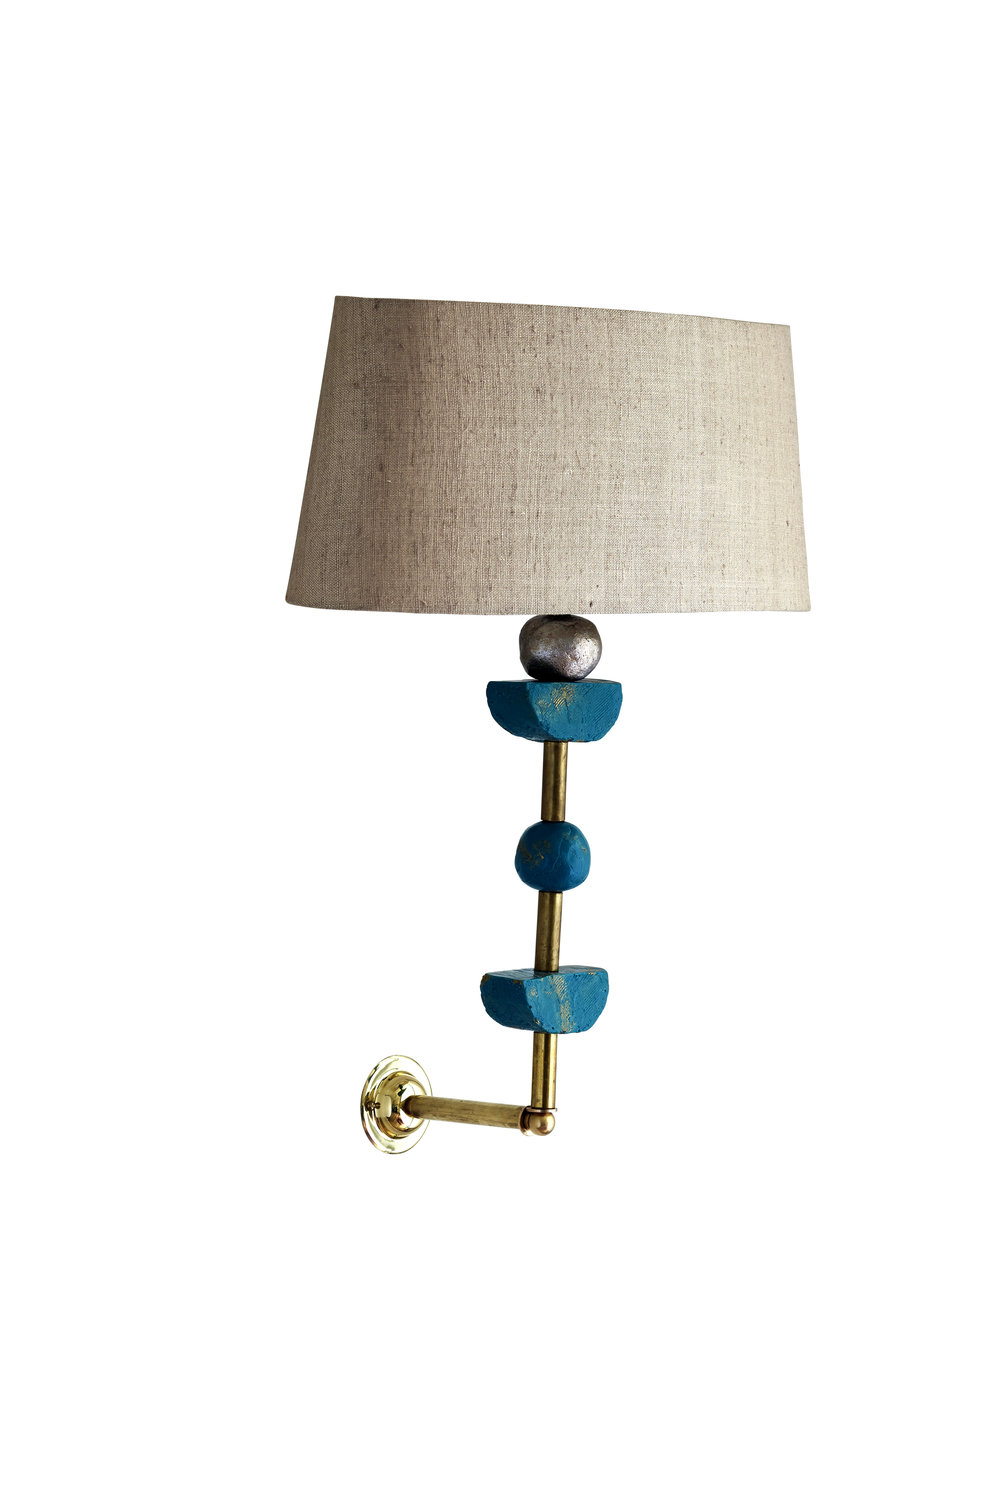 PARIS wall light teal  MARGIT WITTIG.jpg